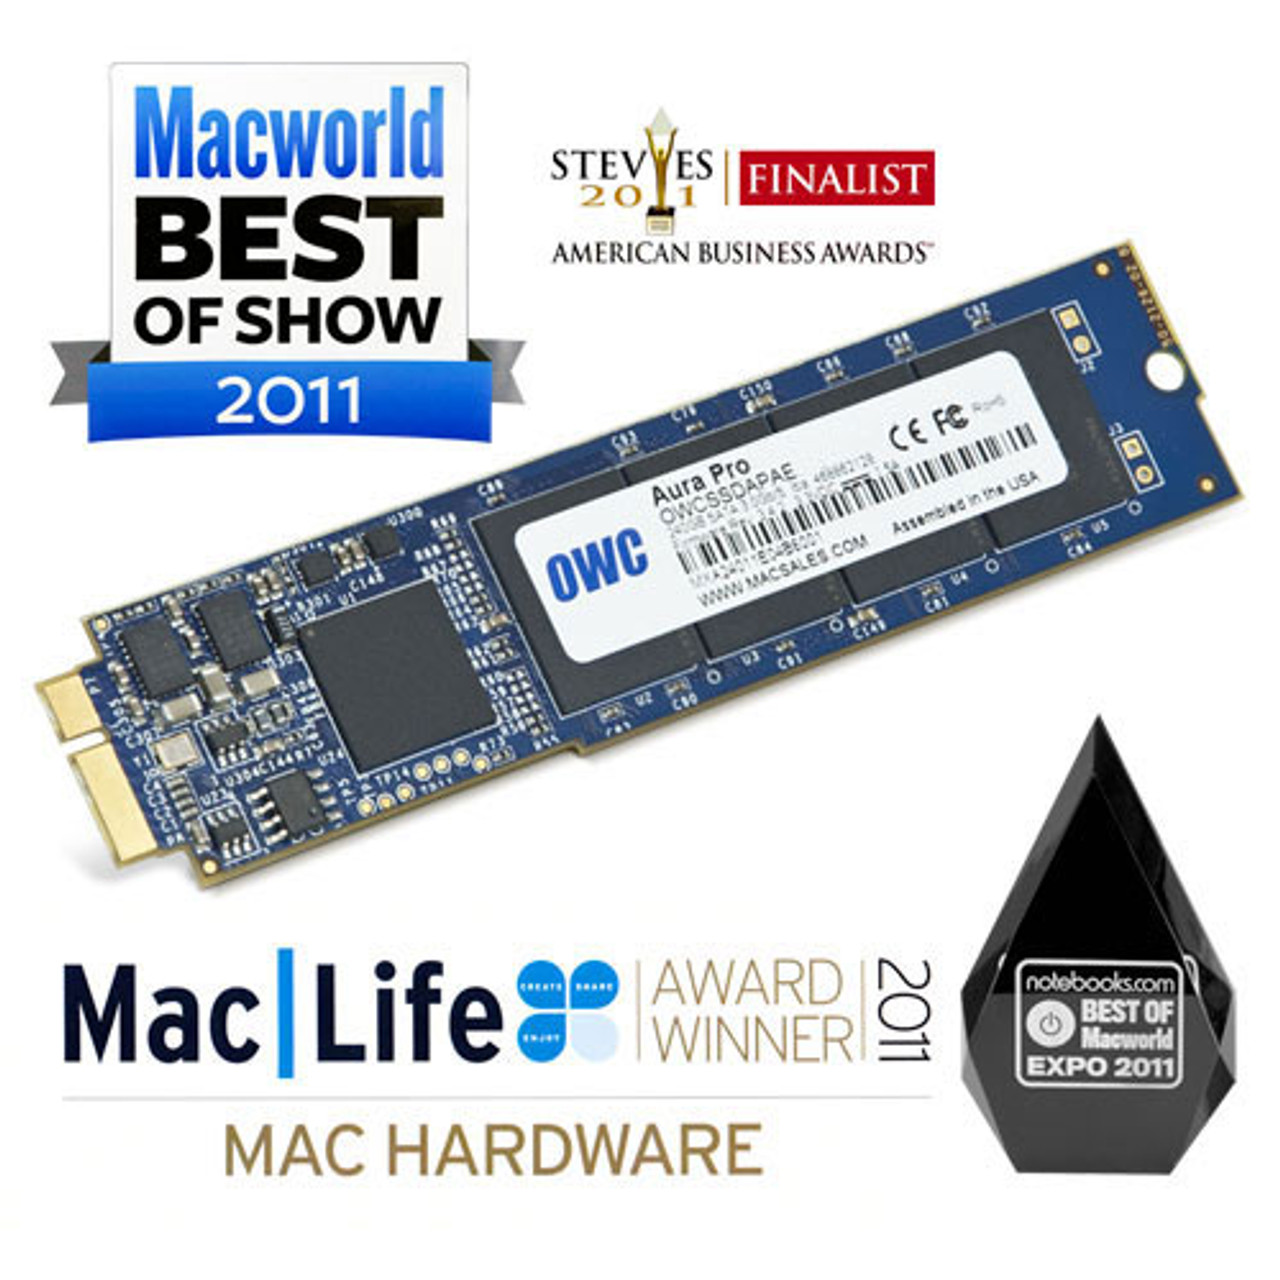 OWC 250GB Aura Pro 6G Solid State Drive with upgrade kit for MacBook Air (Late 2010 - Mid 2011)